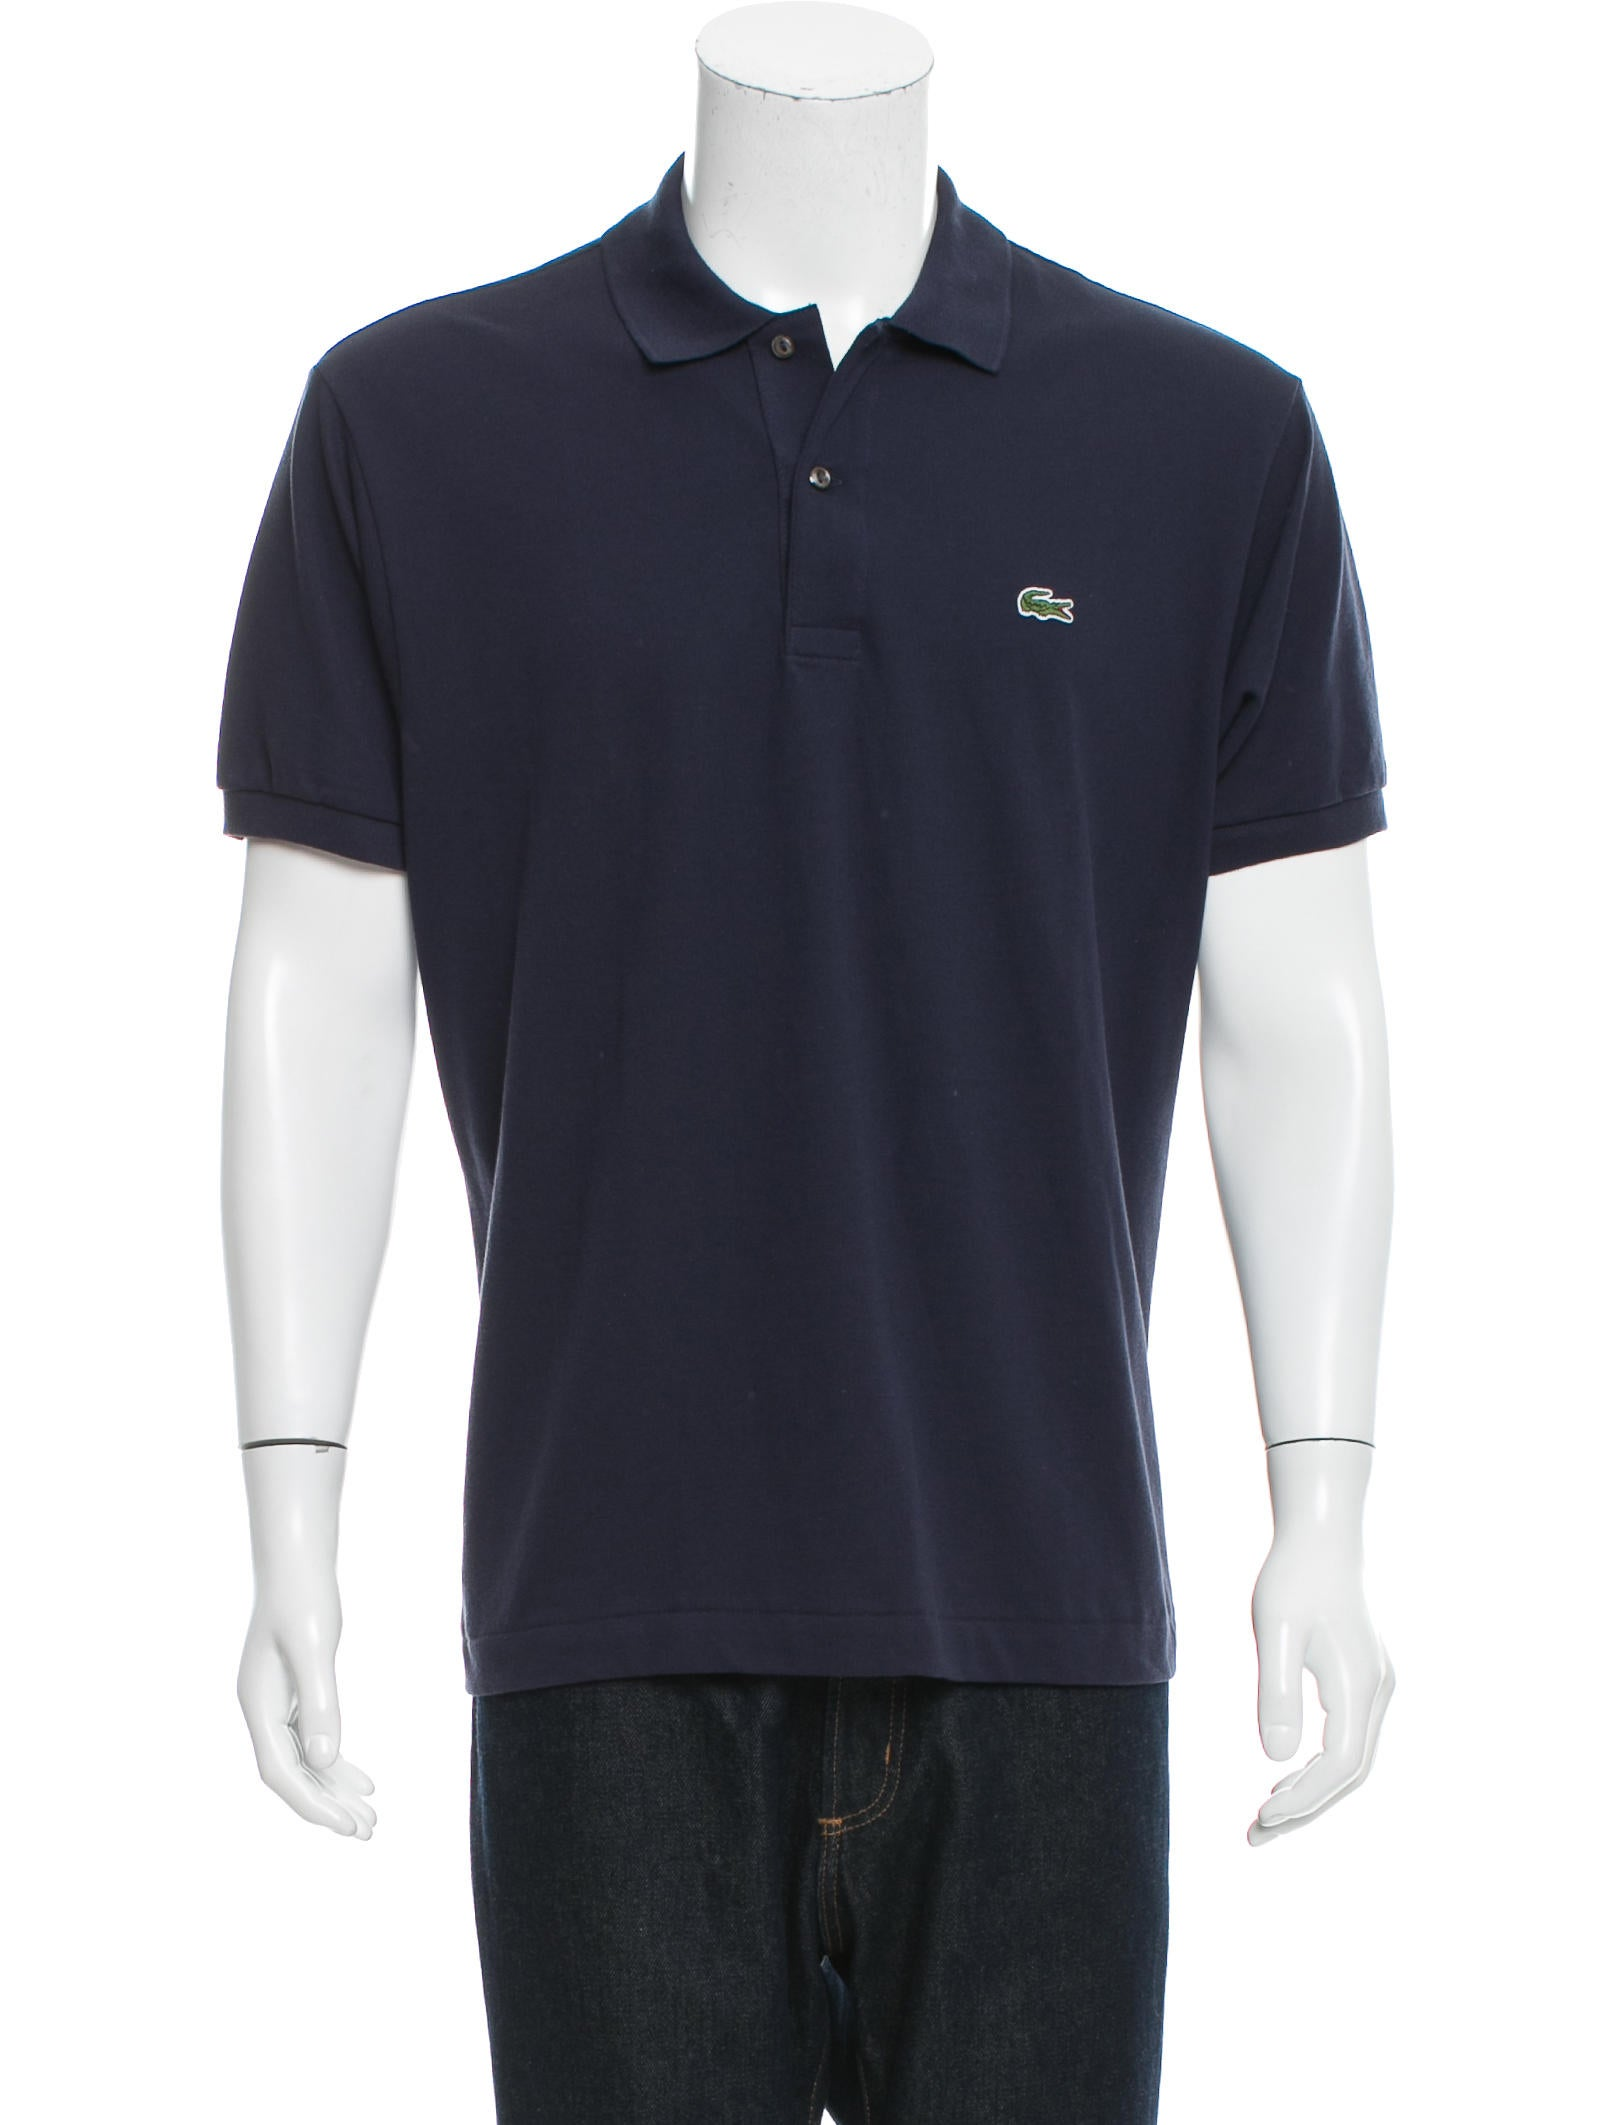 Lacoste logo polo shirt w tags clothing wlcst20020 for Lacoste poloshirt weiay